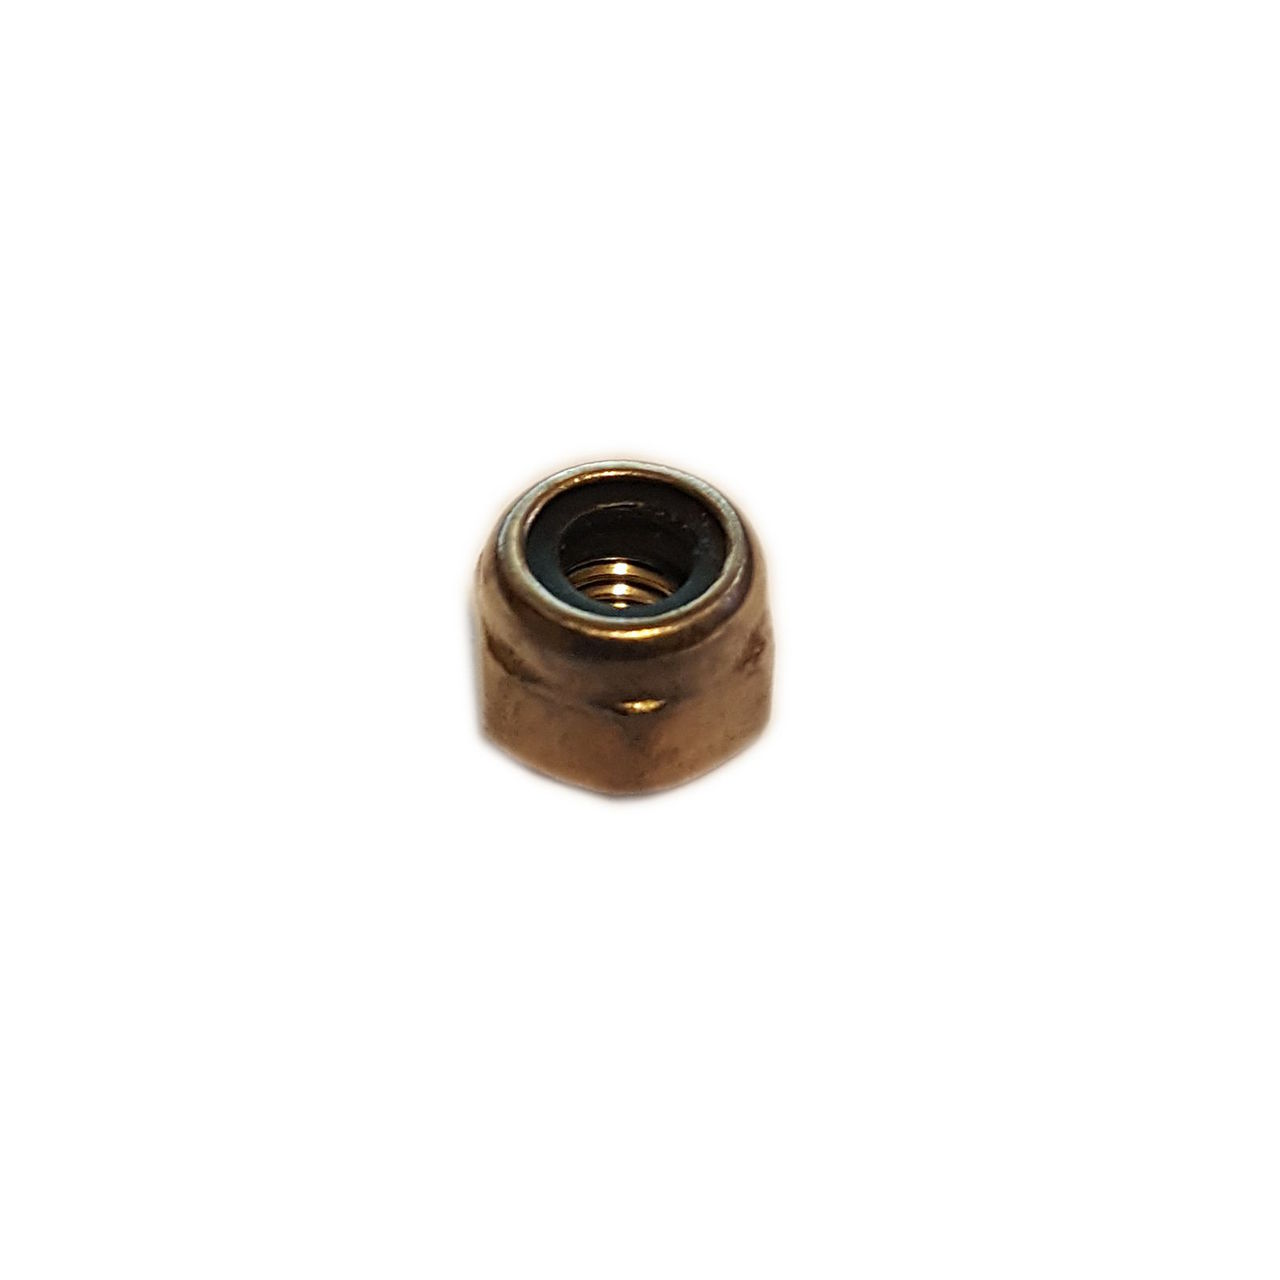 M2 Hex Nut - Nylon Stainless Steel - 3D Printing Canada